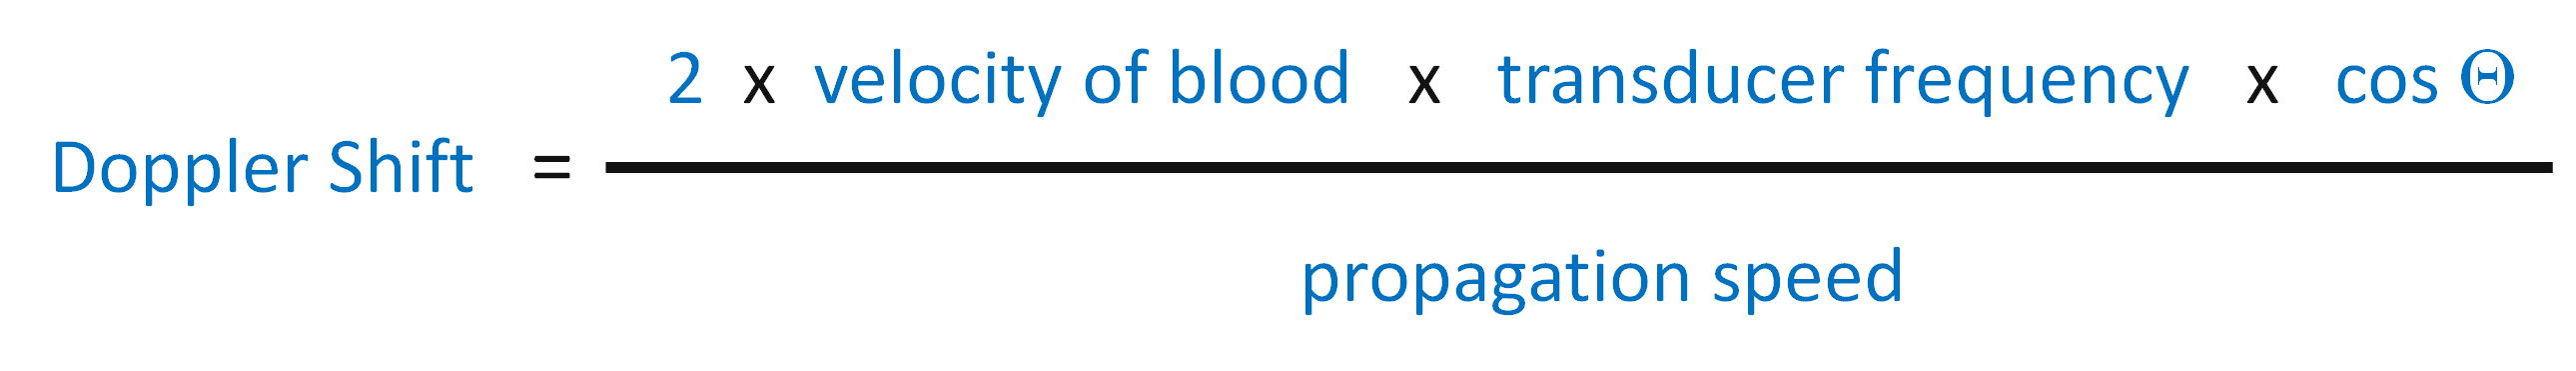 Doppler Effect and Measuring Velocity of Blood in the Circulation, ESP Inc